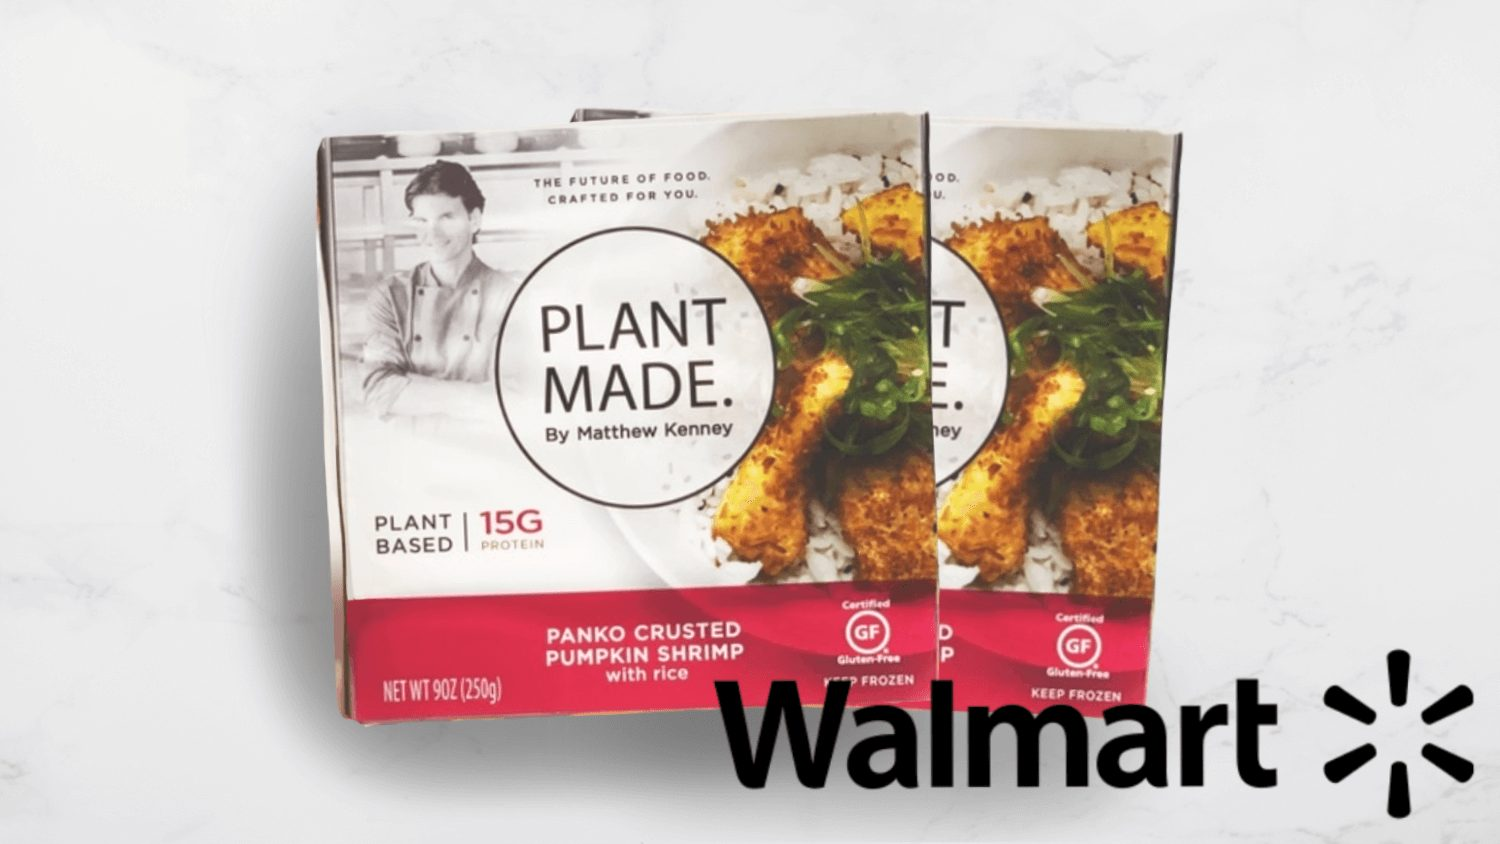 This Celeb Chef Is Launching Vegan Shrimp In Walmart